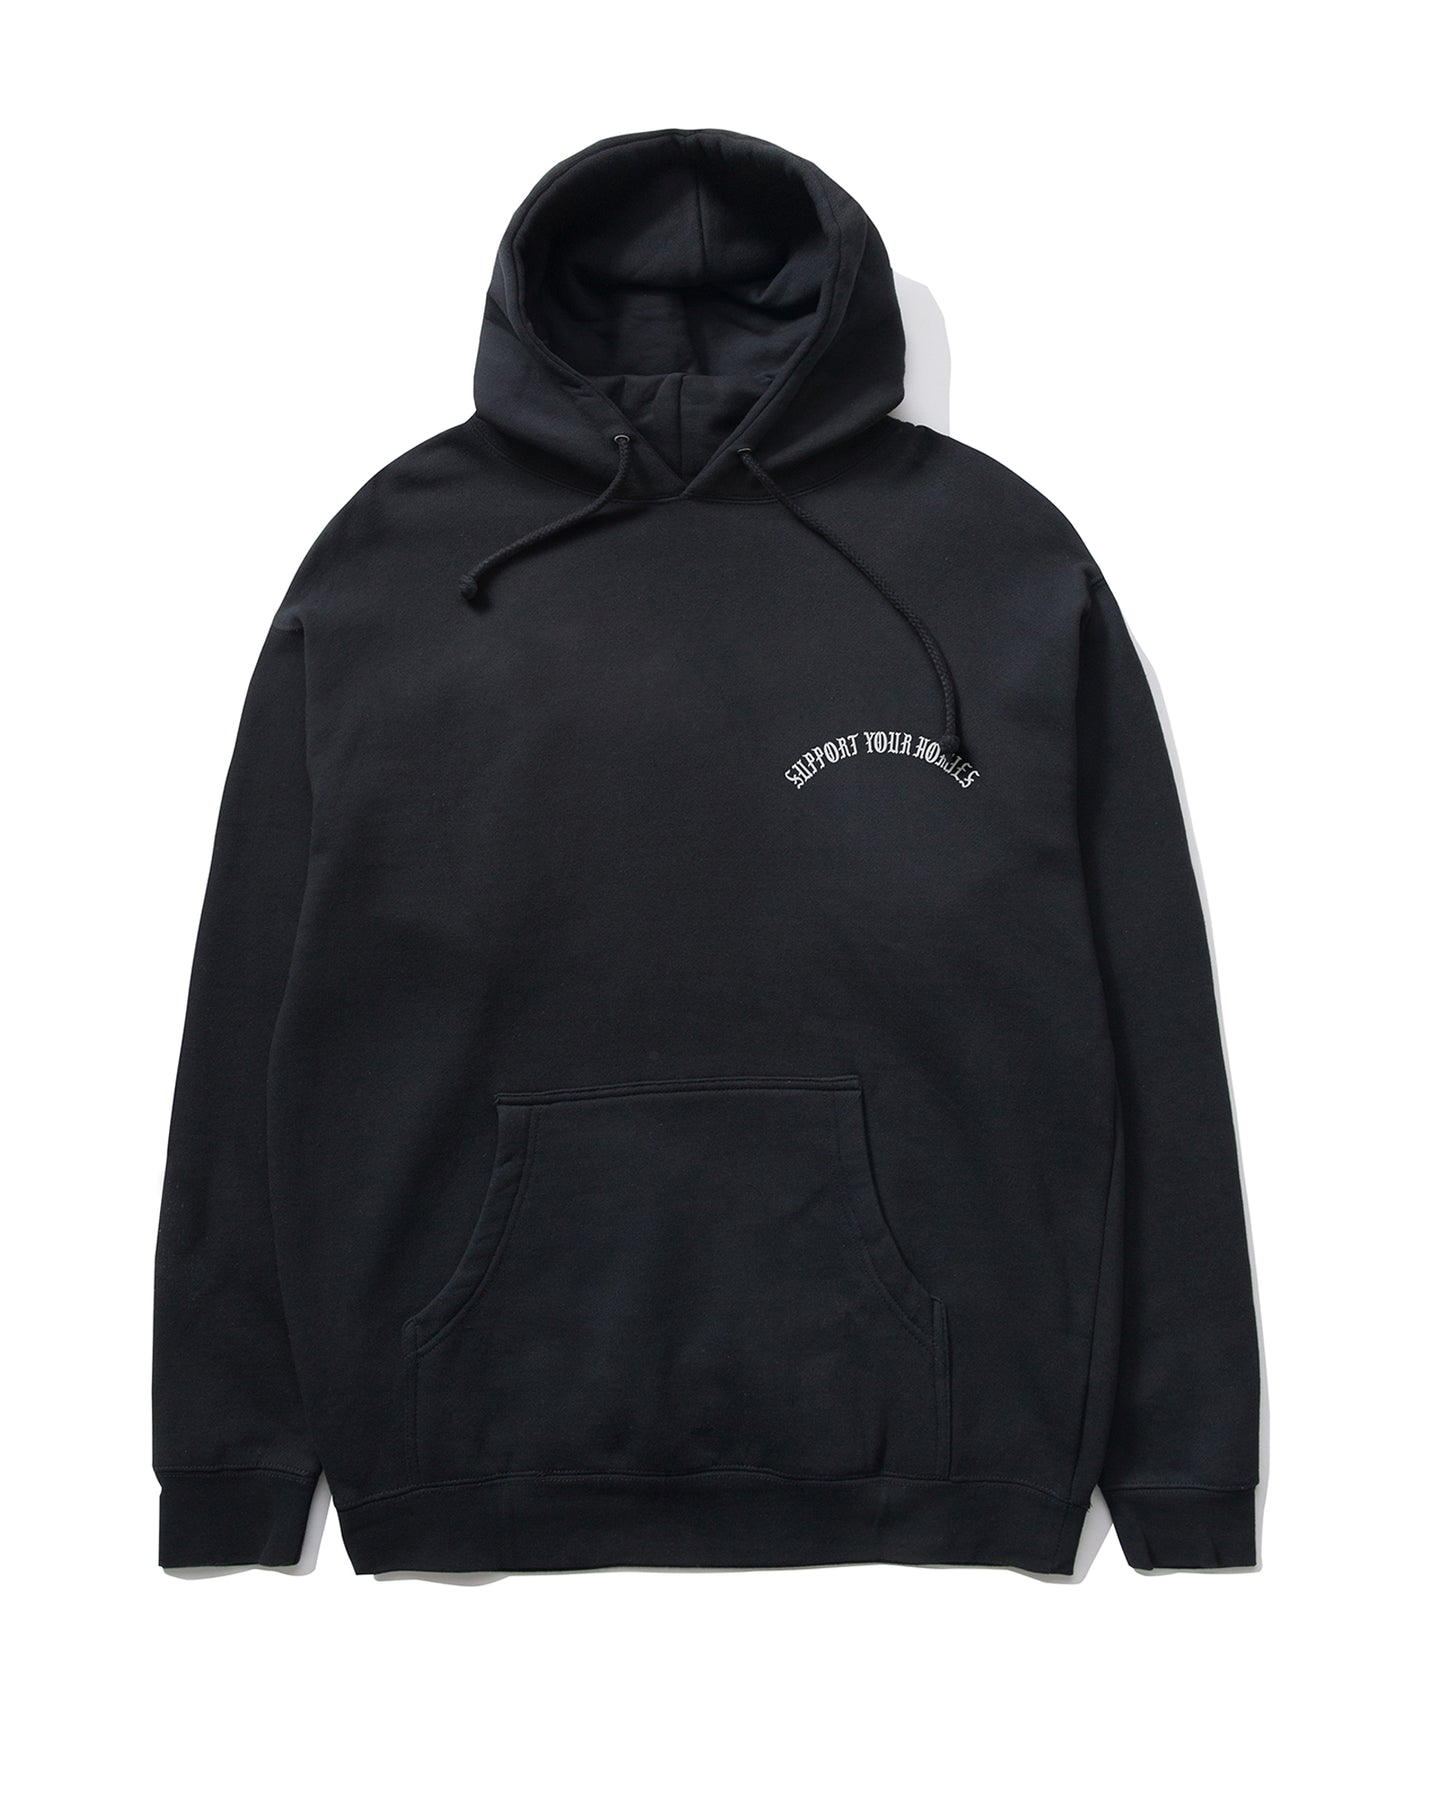 Support Your Homies Pullover, Black